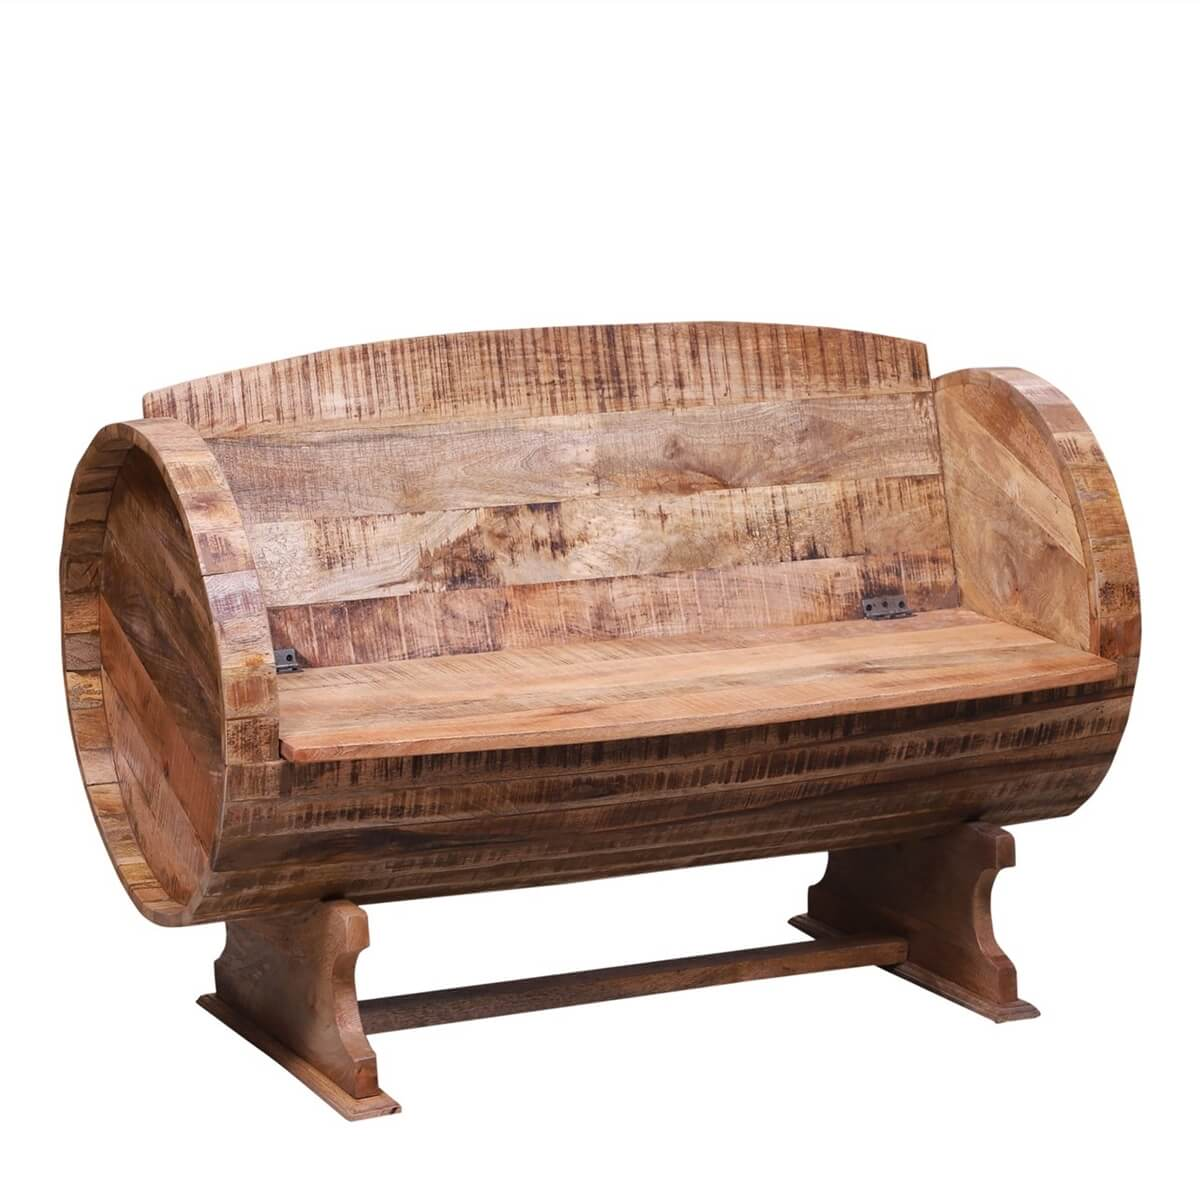 Couva Rustic Reclaimed Wood Bench With Storage